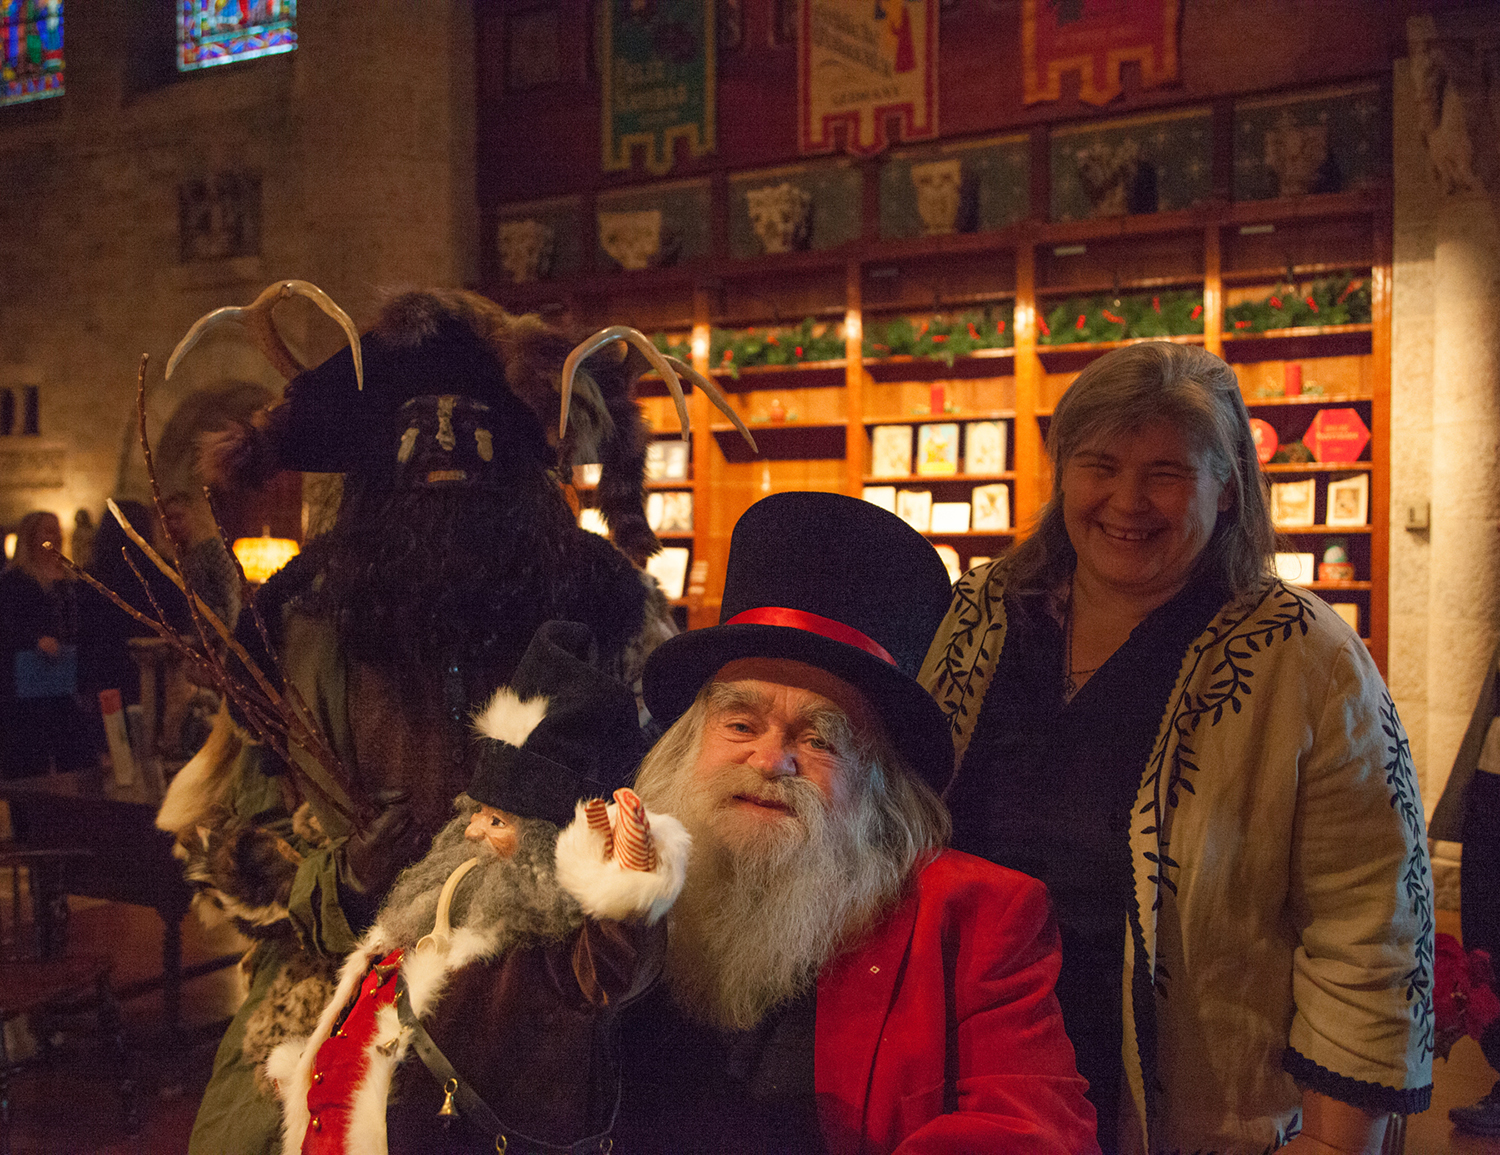 "Figure 6: Nancy Schnarr-Bruell, from Bryn Athyn, Pennsylvania, poses with ""Belsnickel"" (aka Patrick Donmoyer, director of the Pennsylvania German Cultural Heritage Center) and ""Santa Jr."" (aka Jim Morrison, founder/curator of the National Christmas Center). Santa Jr. is holding a Belsnickel doll crafted by Schnarr-Bruell. Photo taken in Glencairn's Great Hall in 2016."